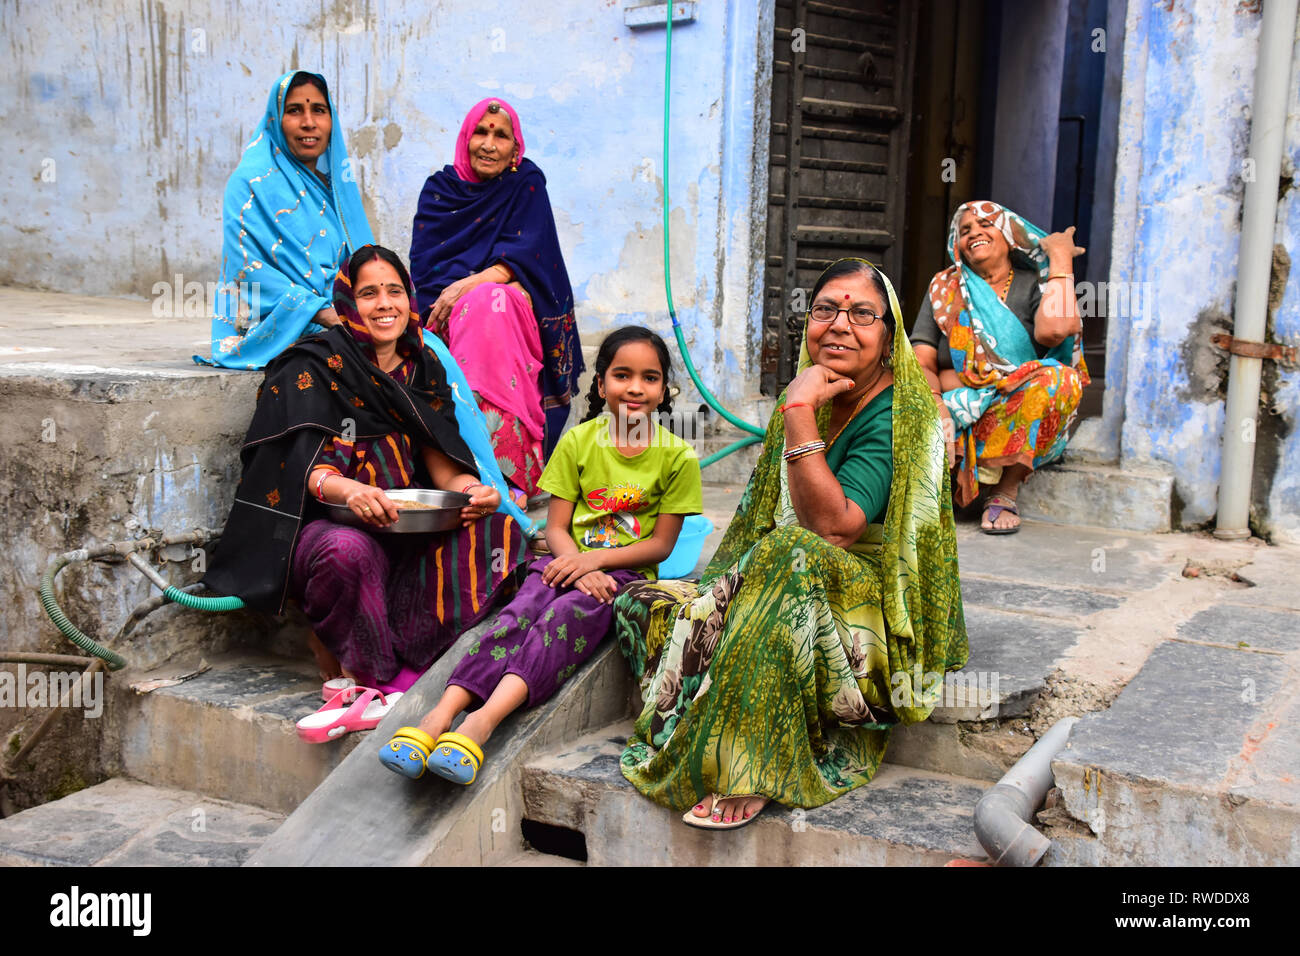 fad23a0cc3 Indian ladies sitting in traditional dress, Chittorgarh, Rajasthan, India -  Stock Image